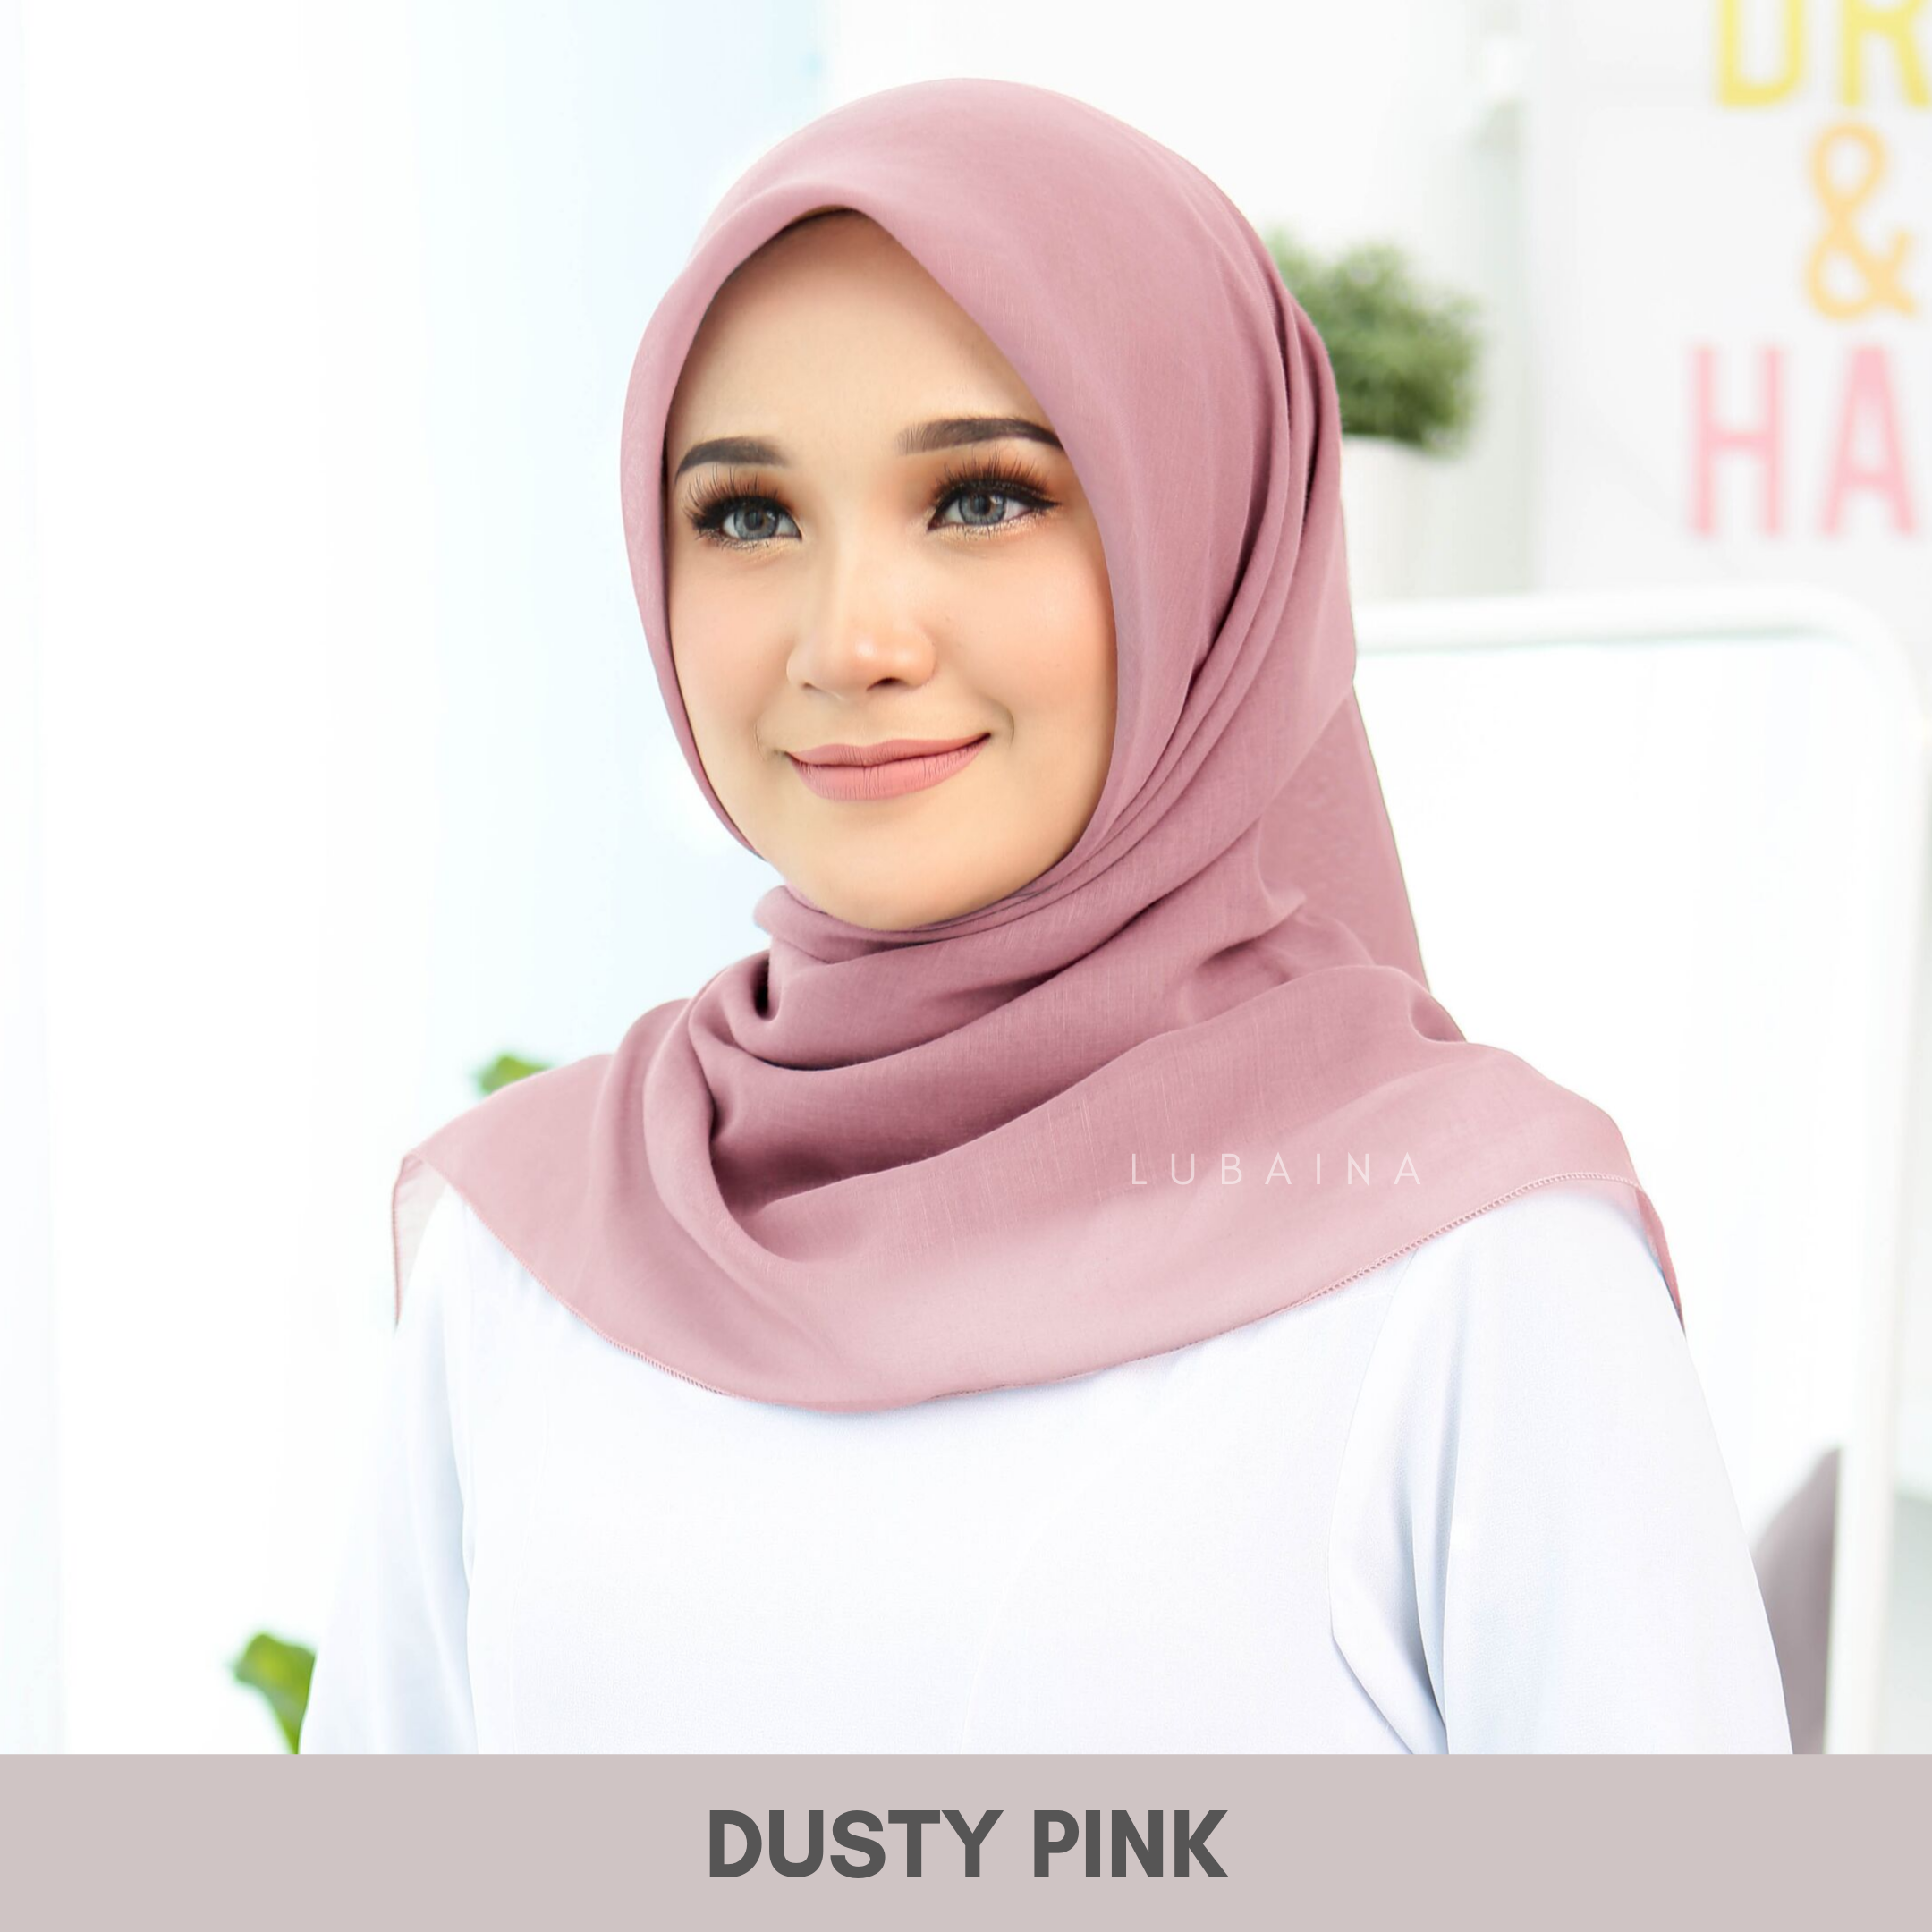 50 - Dusty Pink.png